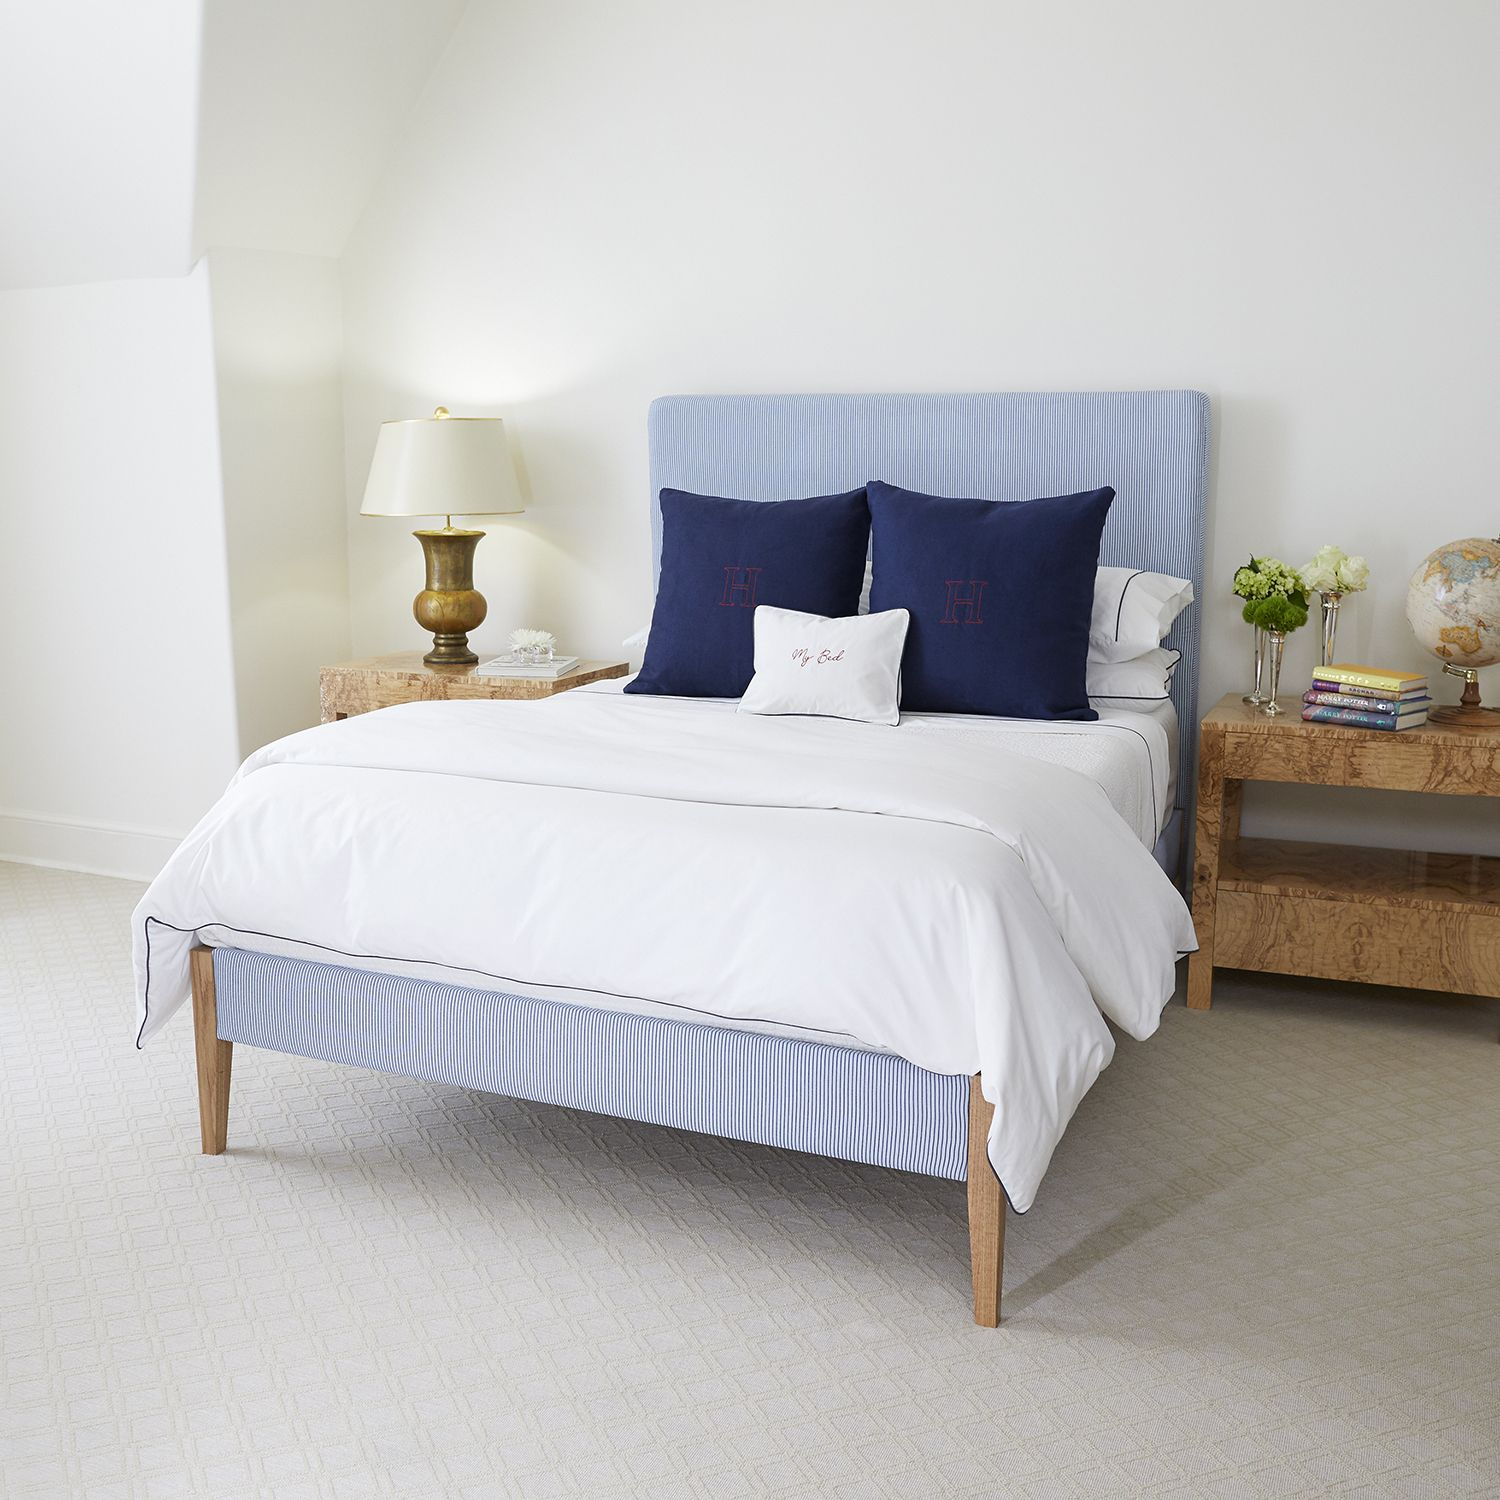 Coley Home Offers Shippable Customizable Beds Ideal For Small Spaces